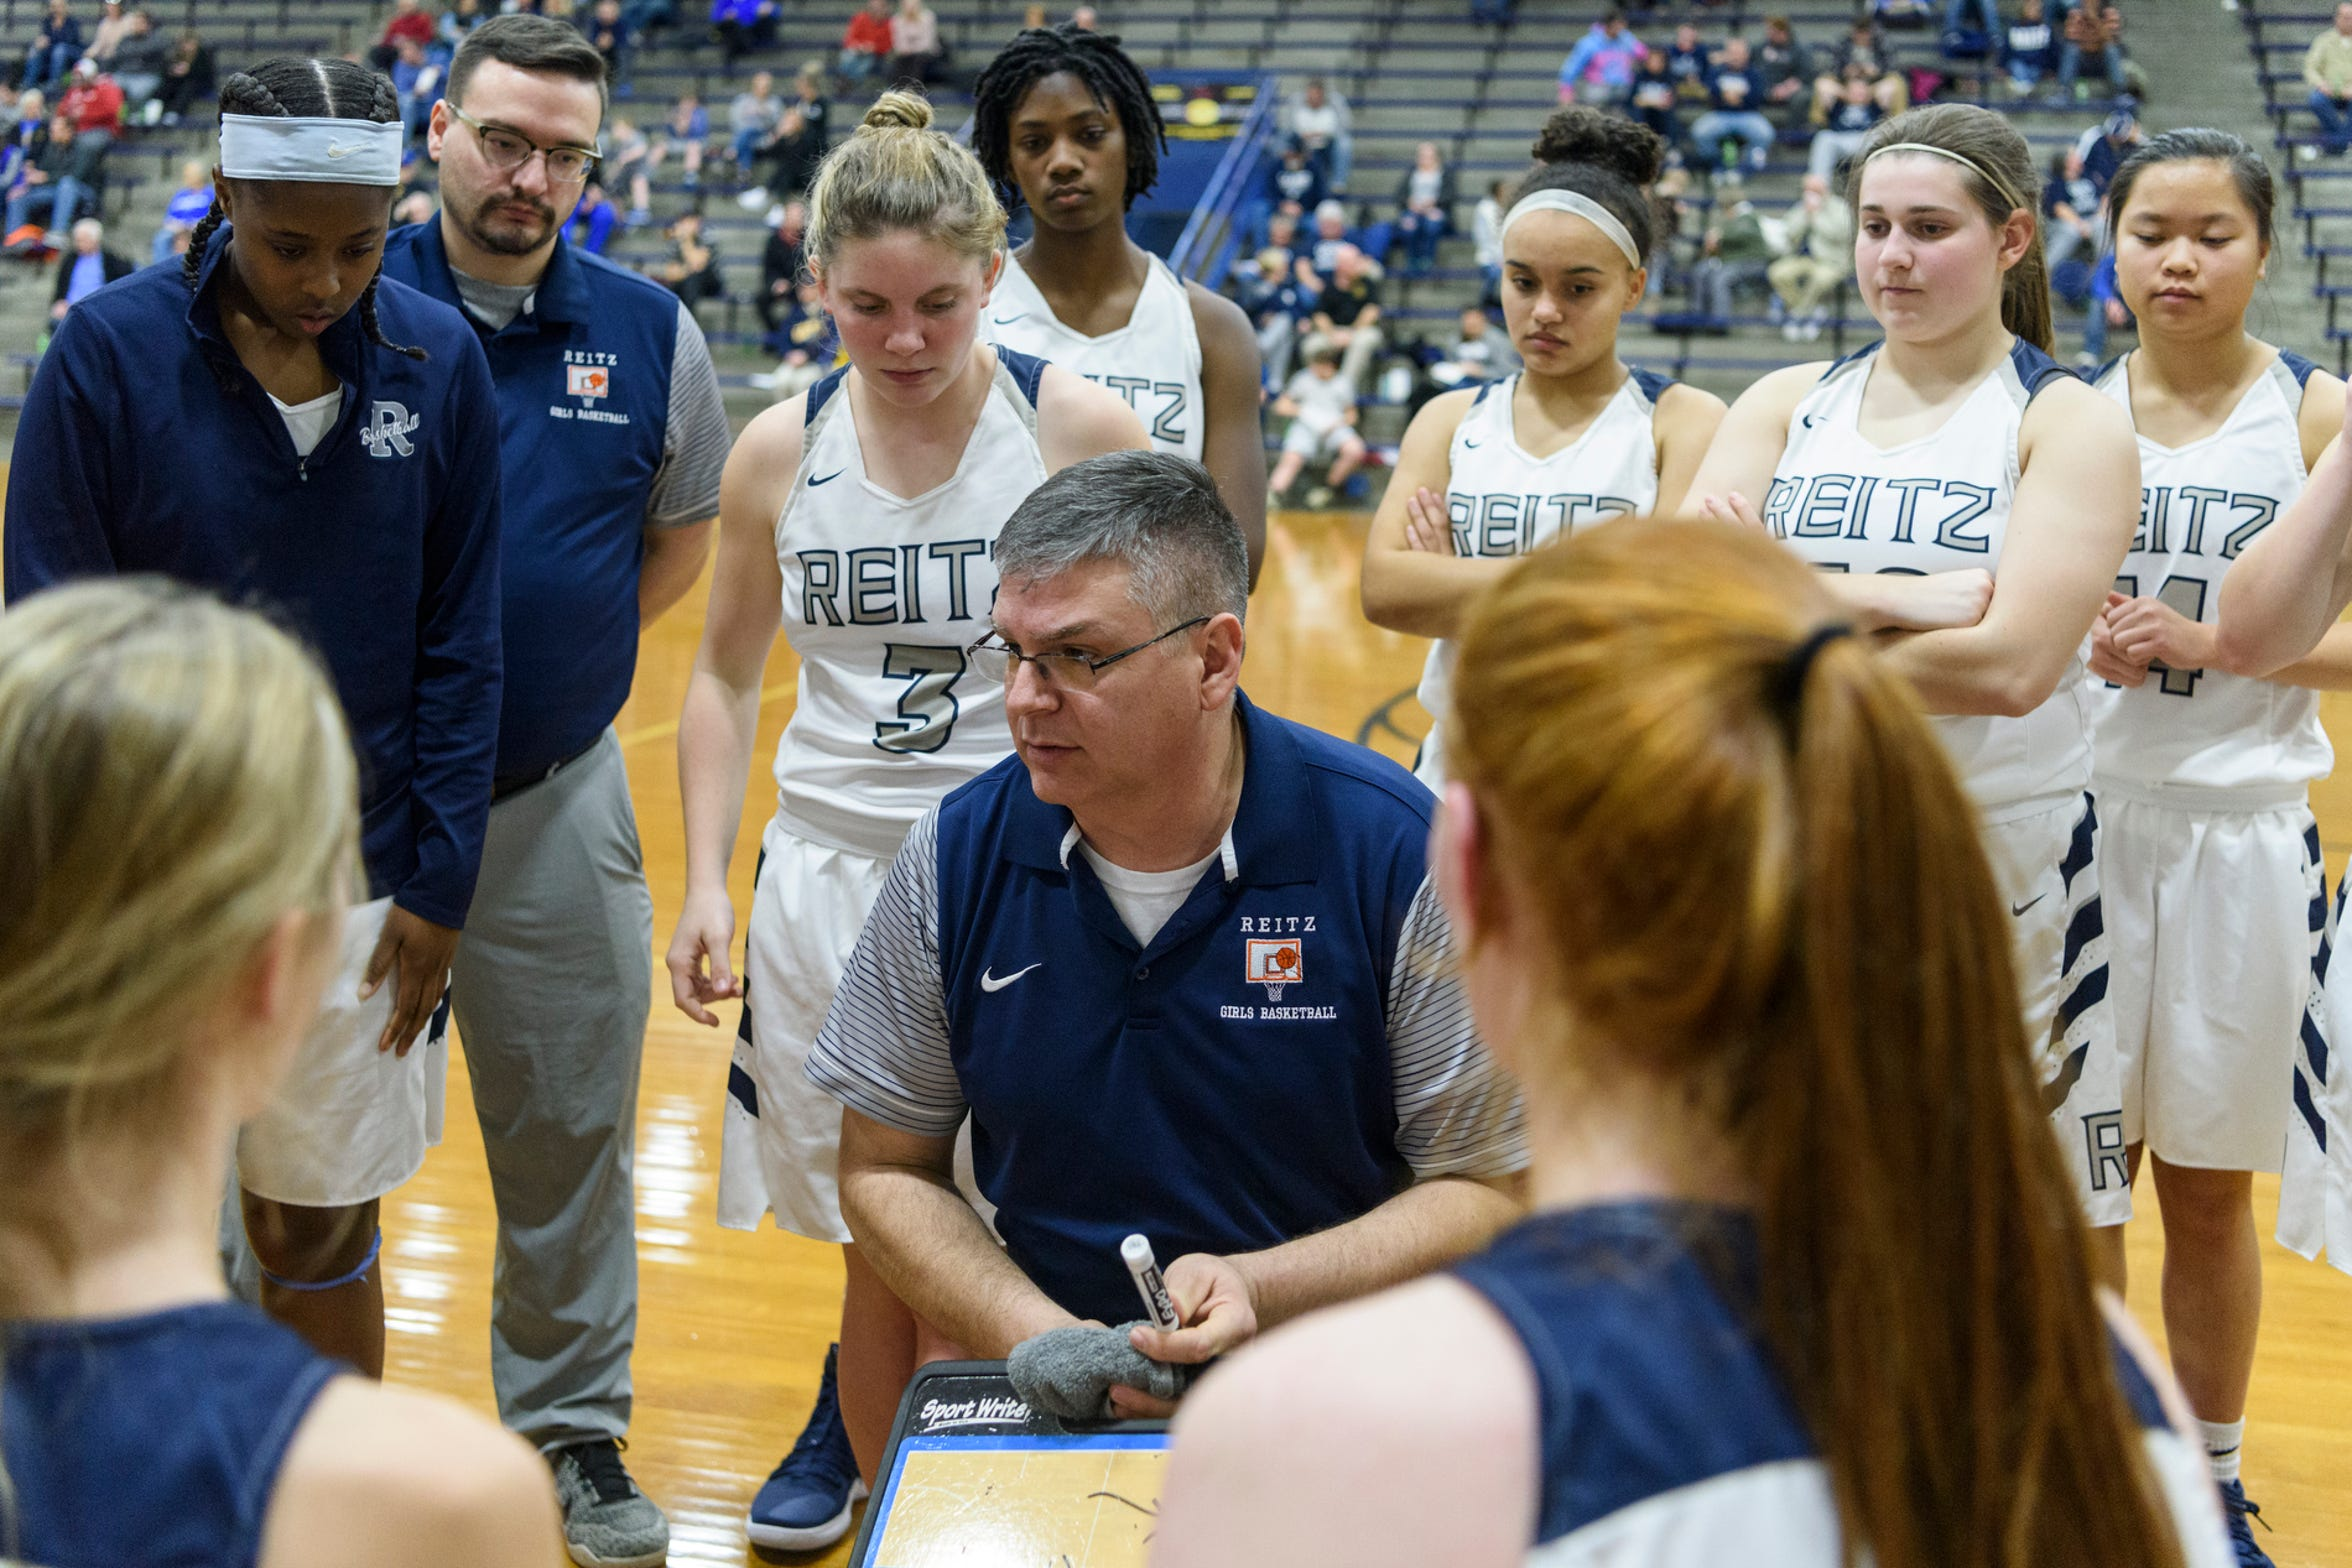 Reitz Head Coach Gary Loveless, center, strategizes with his team as they take on the Castle Knights at F.J. Reitz High School in Evansville, Ind., Thursday, Jan. 3, 2019. The Panthers were defeated by the Knights, 51-17.